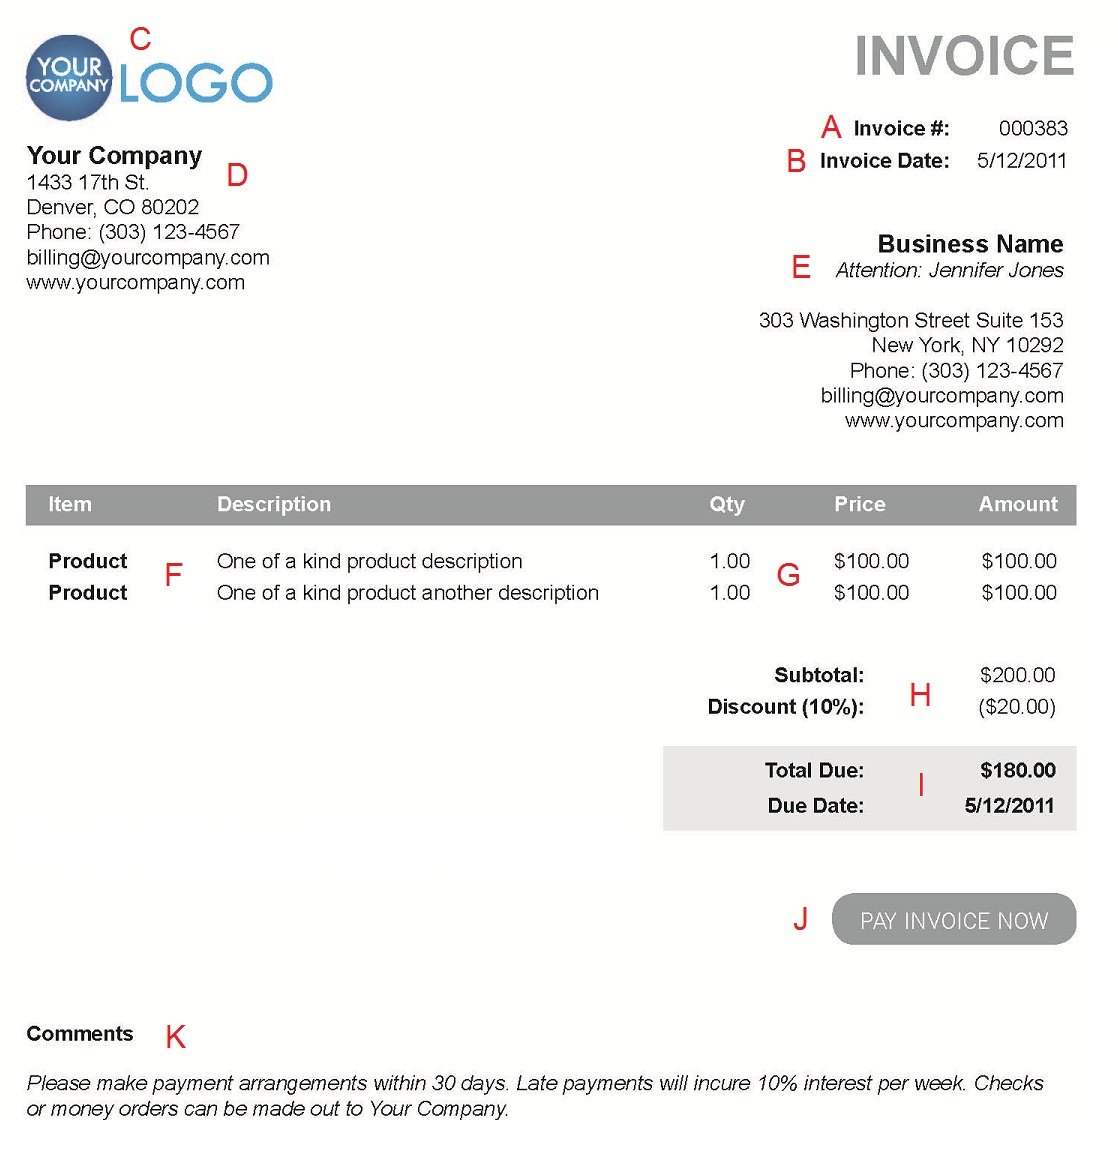 Centralasianshepherdus  Winning The  Different Sections Of An Electronic Payment Invoice With Great A  With Adorable How To Make A Business Invoice Also How To Write A Simple Invoice In Addition Invoicing App For Ipad And Free Invoice Generator Software As Well As Dodge Durango Invoice Price Additionally Property Management Invoice From Paysimplecom With Centralasianshepherdus  Great The  Different Sections Of An Electronic Payment Invoice With Adorable A  And Winning How To Make A Business Invoice Also How To Write A Simple Invoice In Addition Invoicing App For Ipad From Paysimplecom